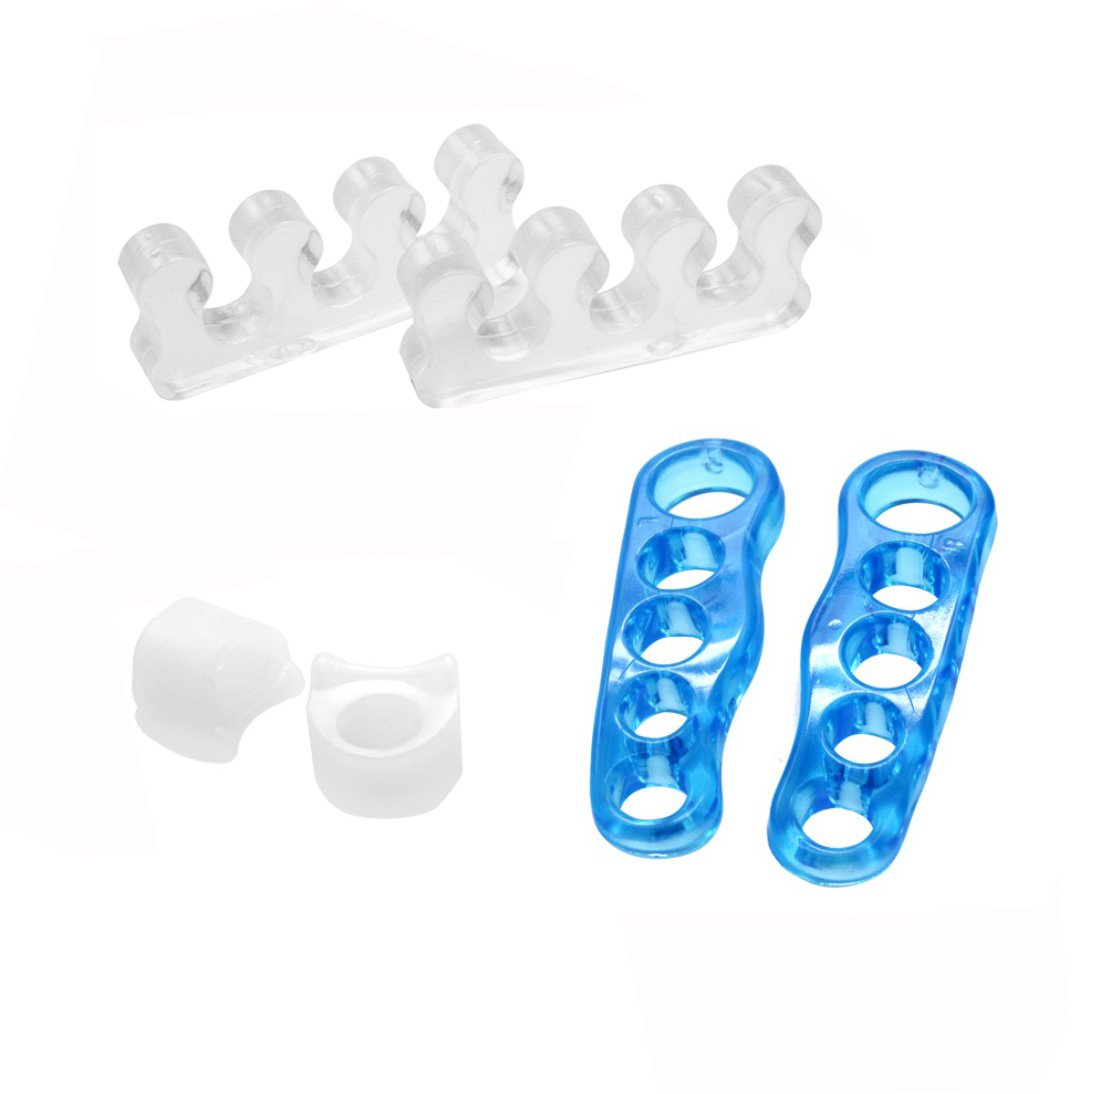 Fanme F-009 Gel Toe Separators 3 pairs Kit Toe Spacers Toe Stretchers Straightener for Yogis Dancers and Athletes Pain Relief for Hammer Toe Bunion Foot Pain Plantar Fasciitis